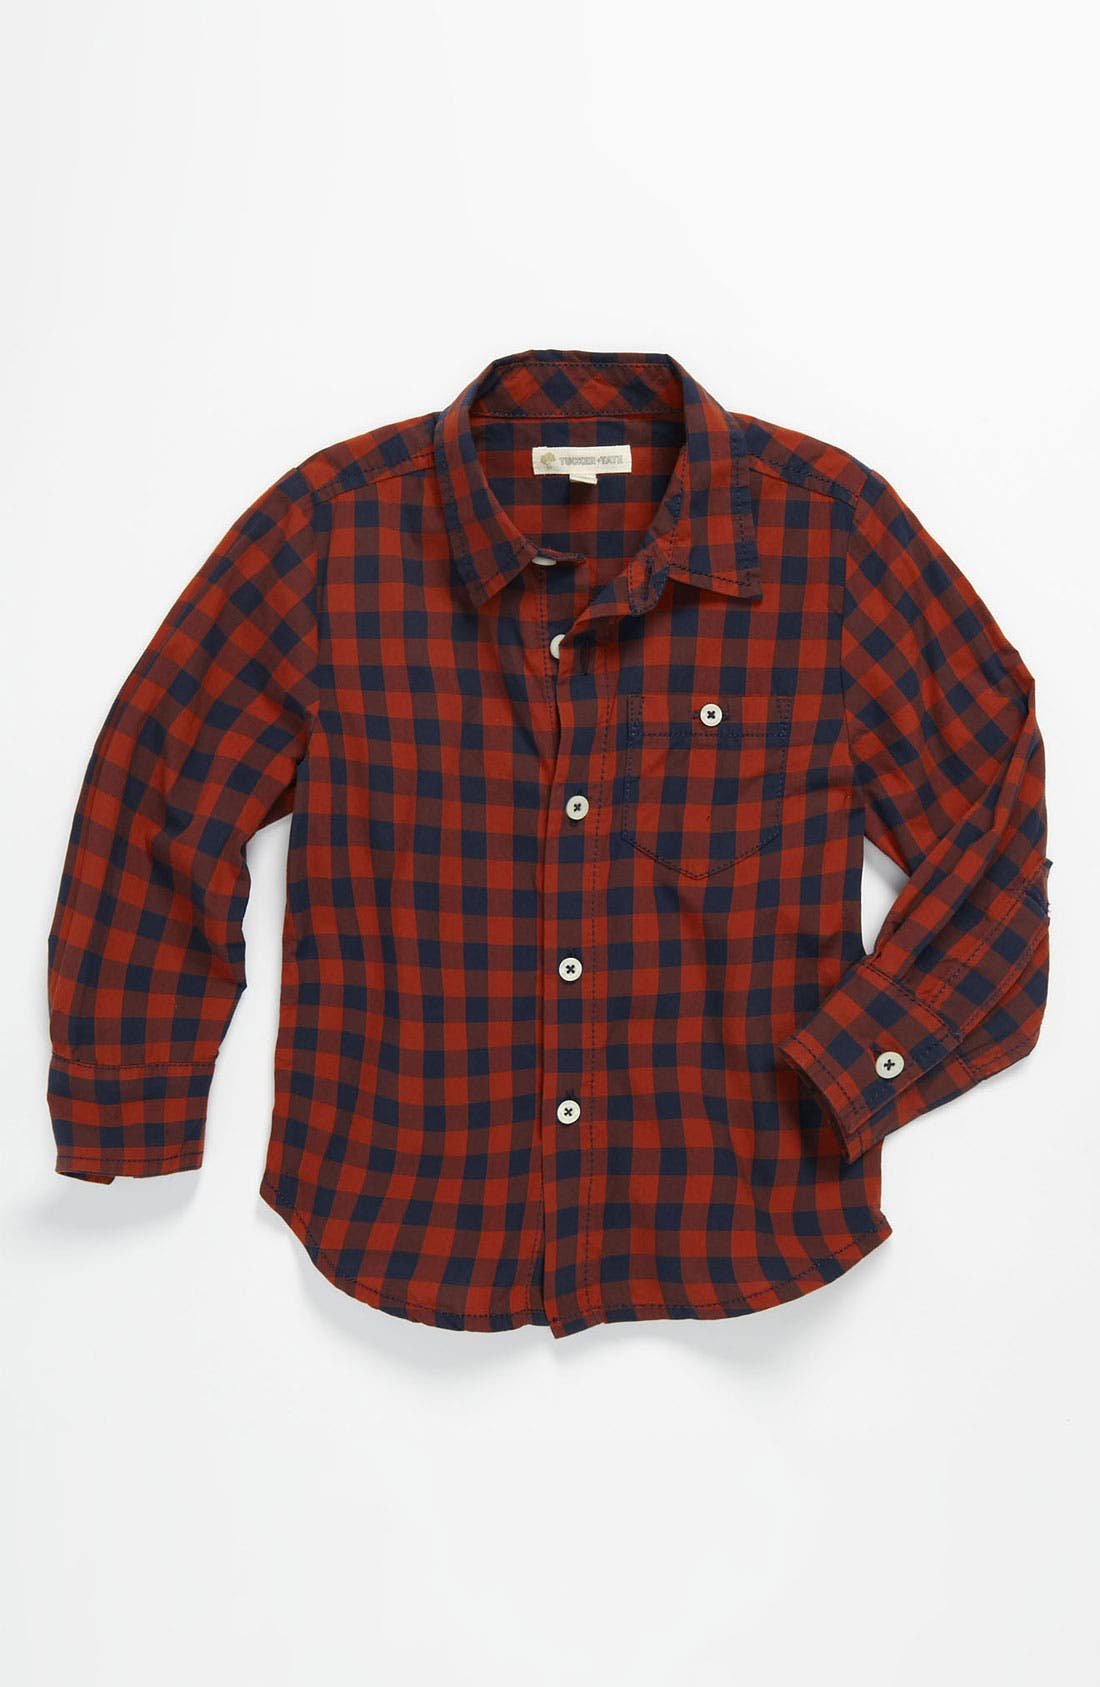 Alternate Image 1 Selected - Tucker + Tate 'Allister' Poplin Shirt (Infant)